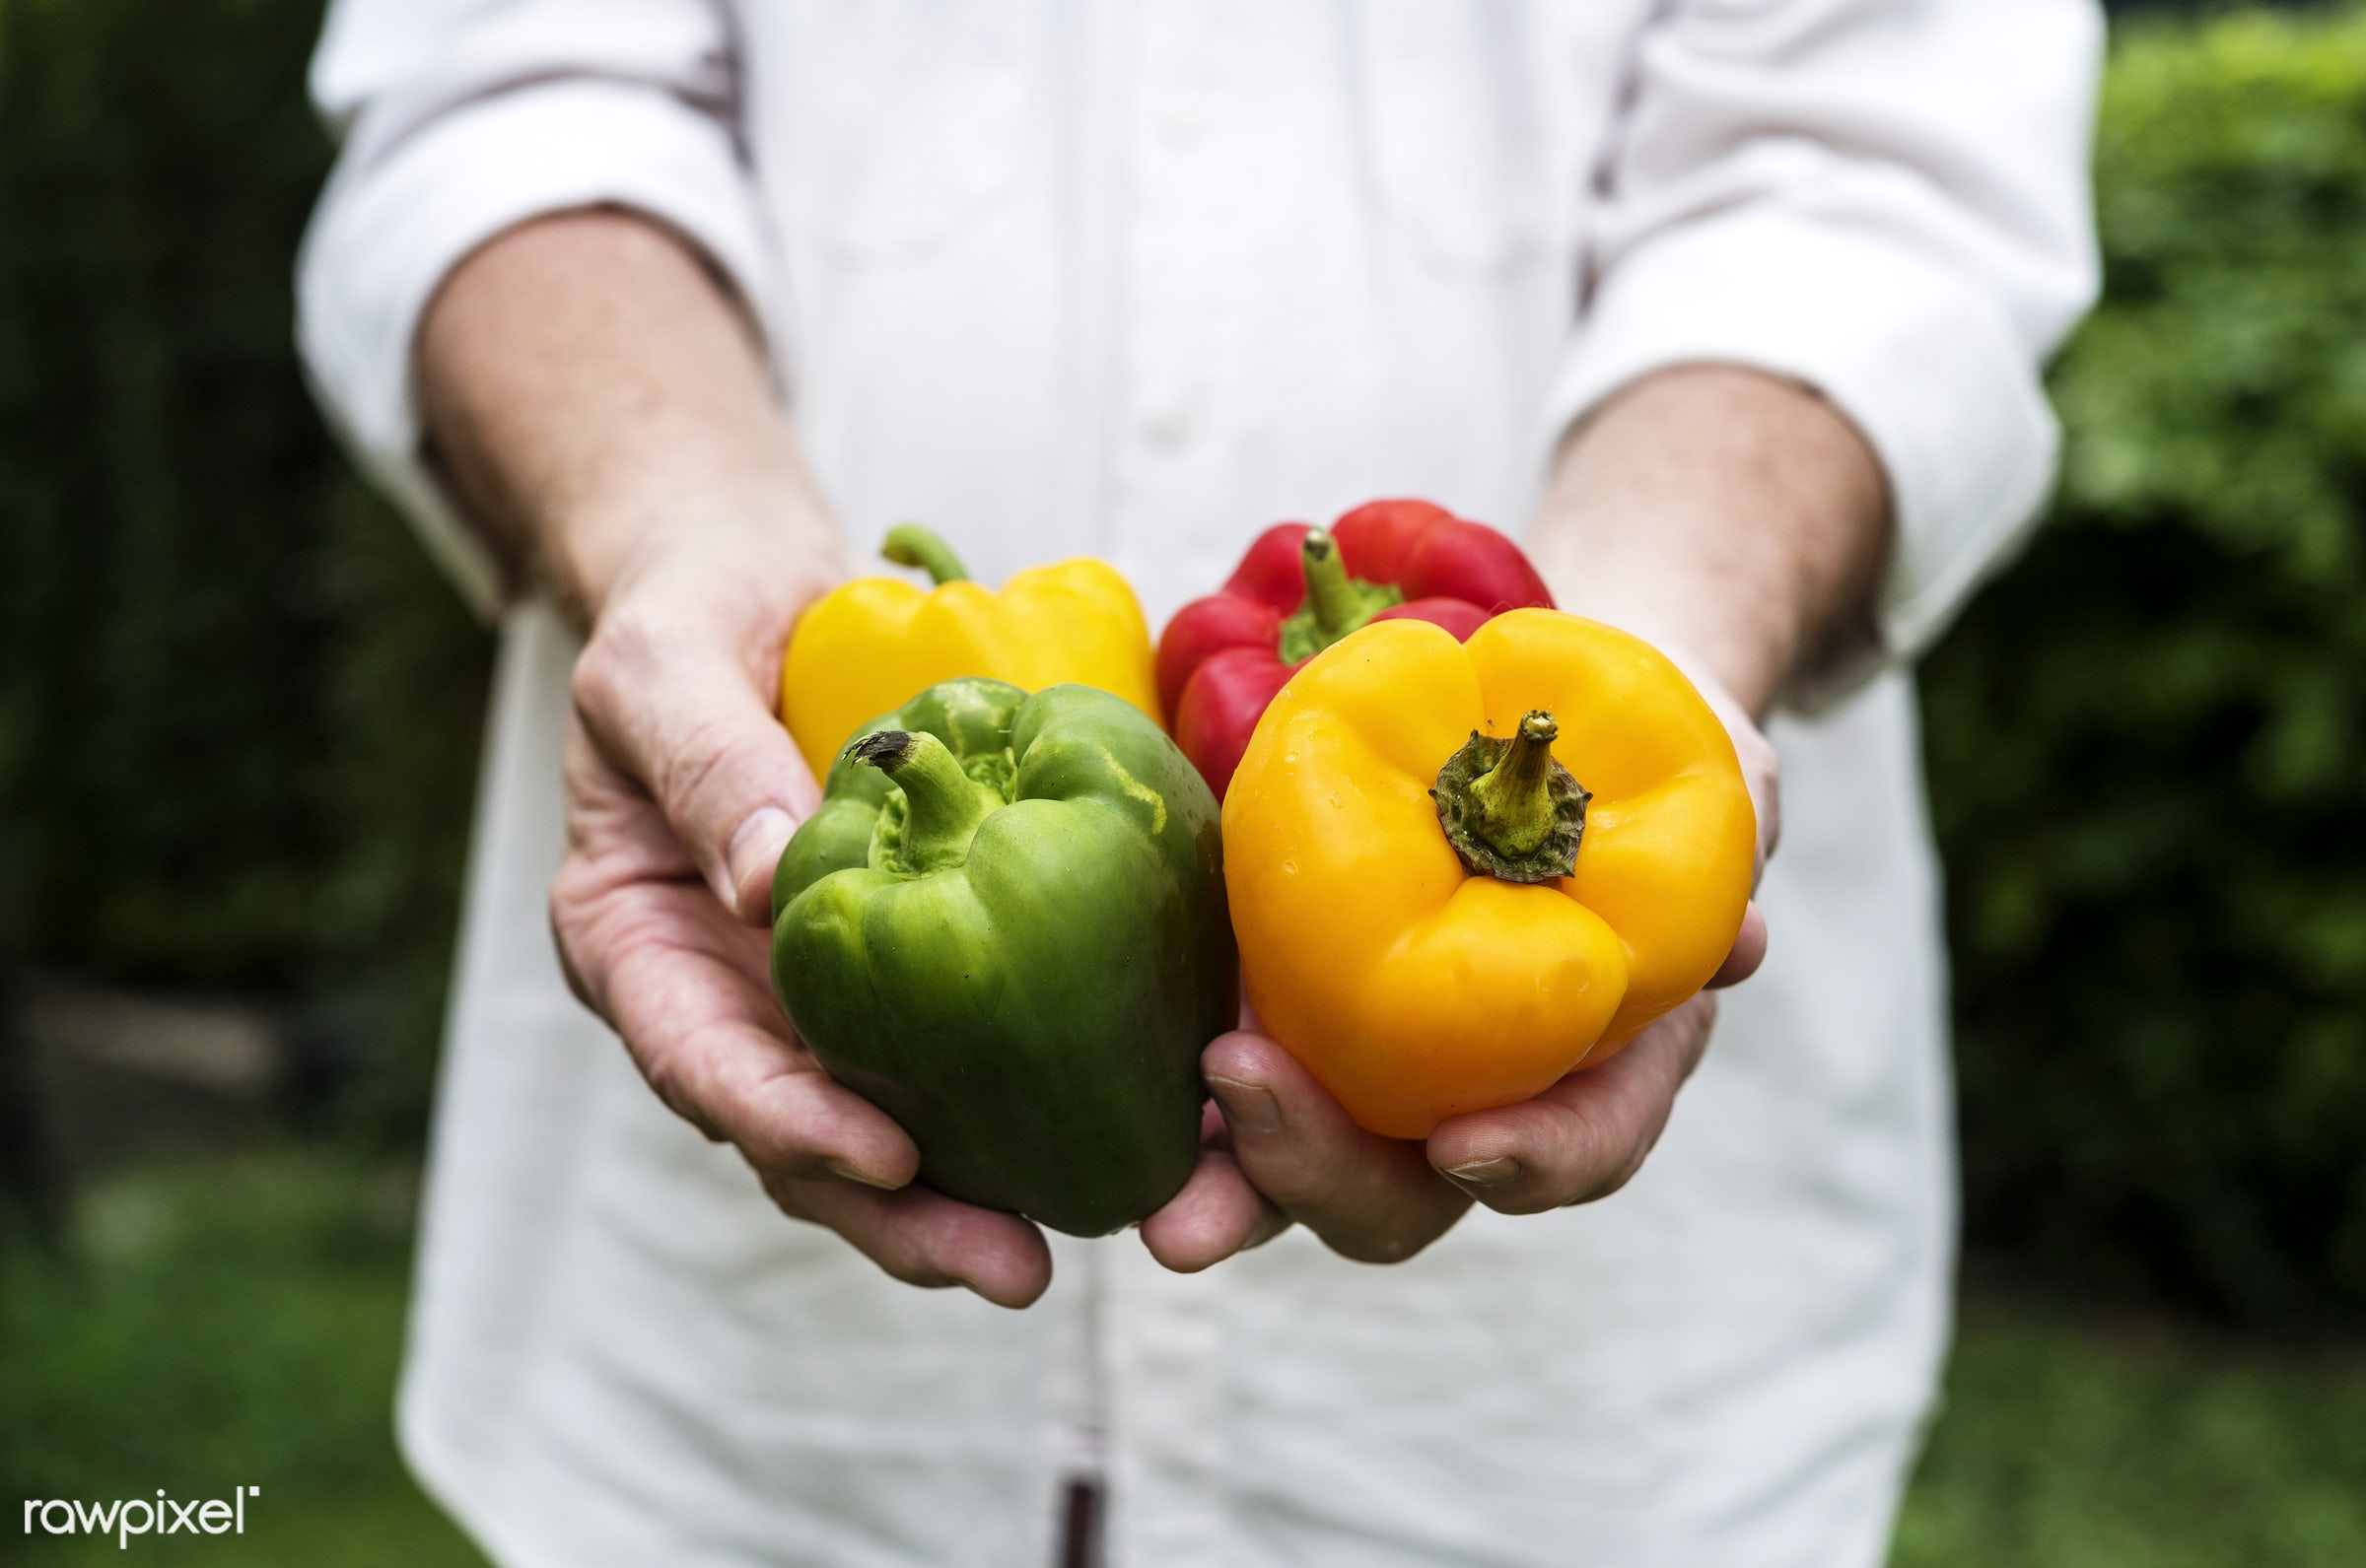 holding, bell pepper, paprika, nature, hands, fresh, ingredient, closeup, organic, food, healthy, harvest, produce